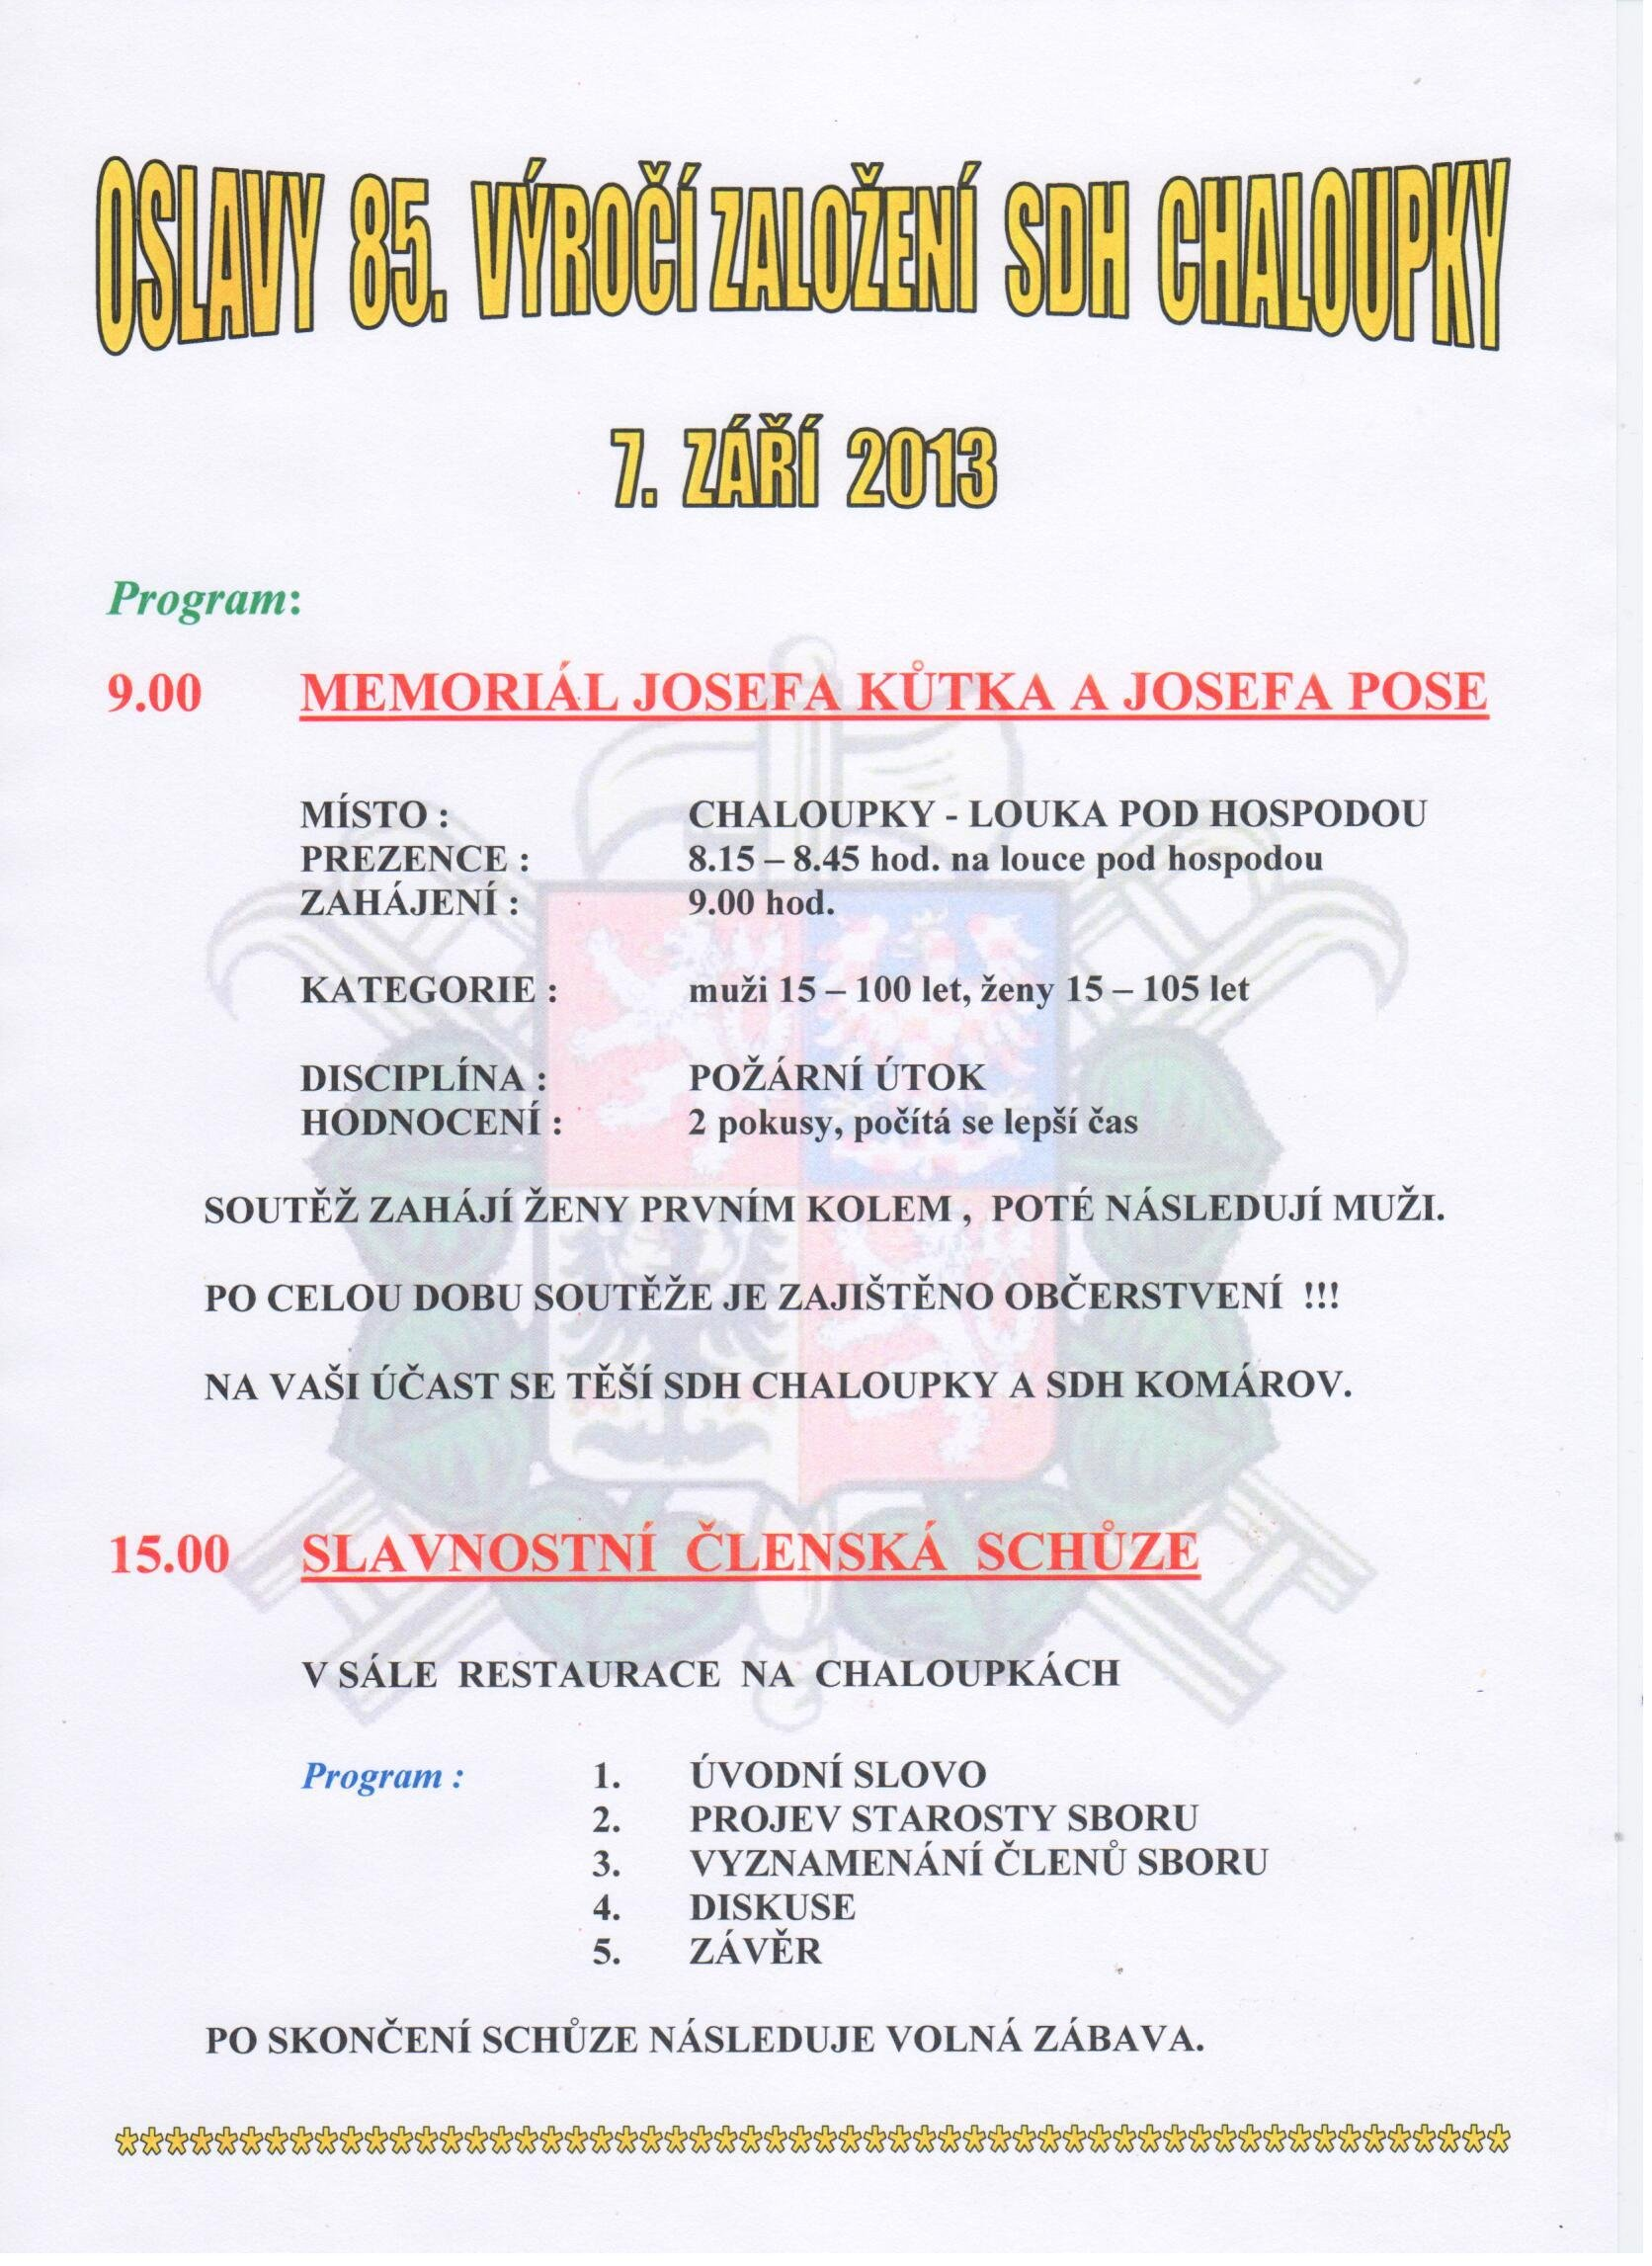 Program na oslavy 85 let.jpg